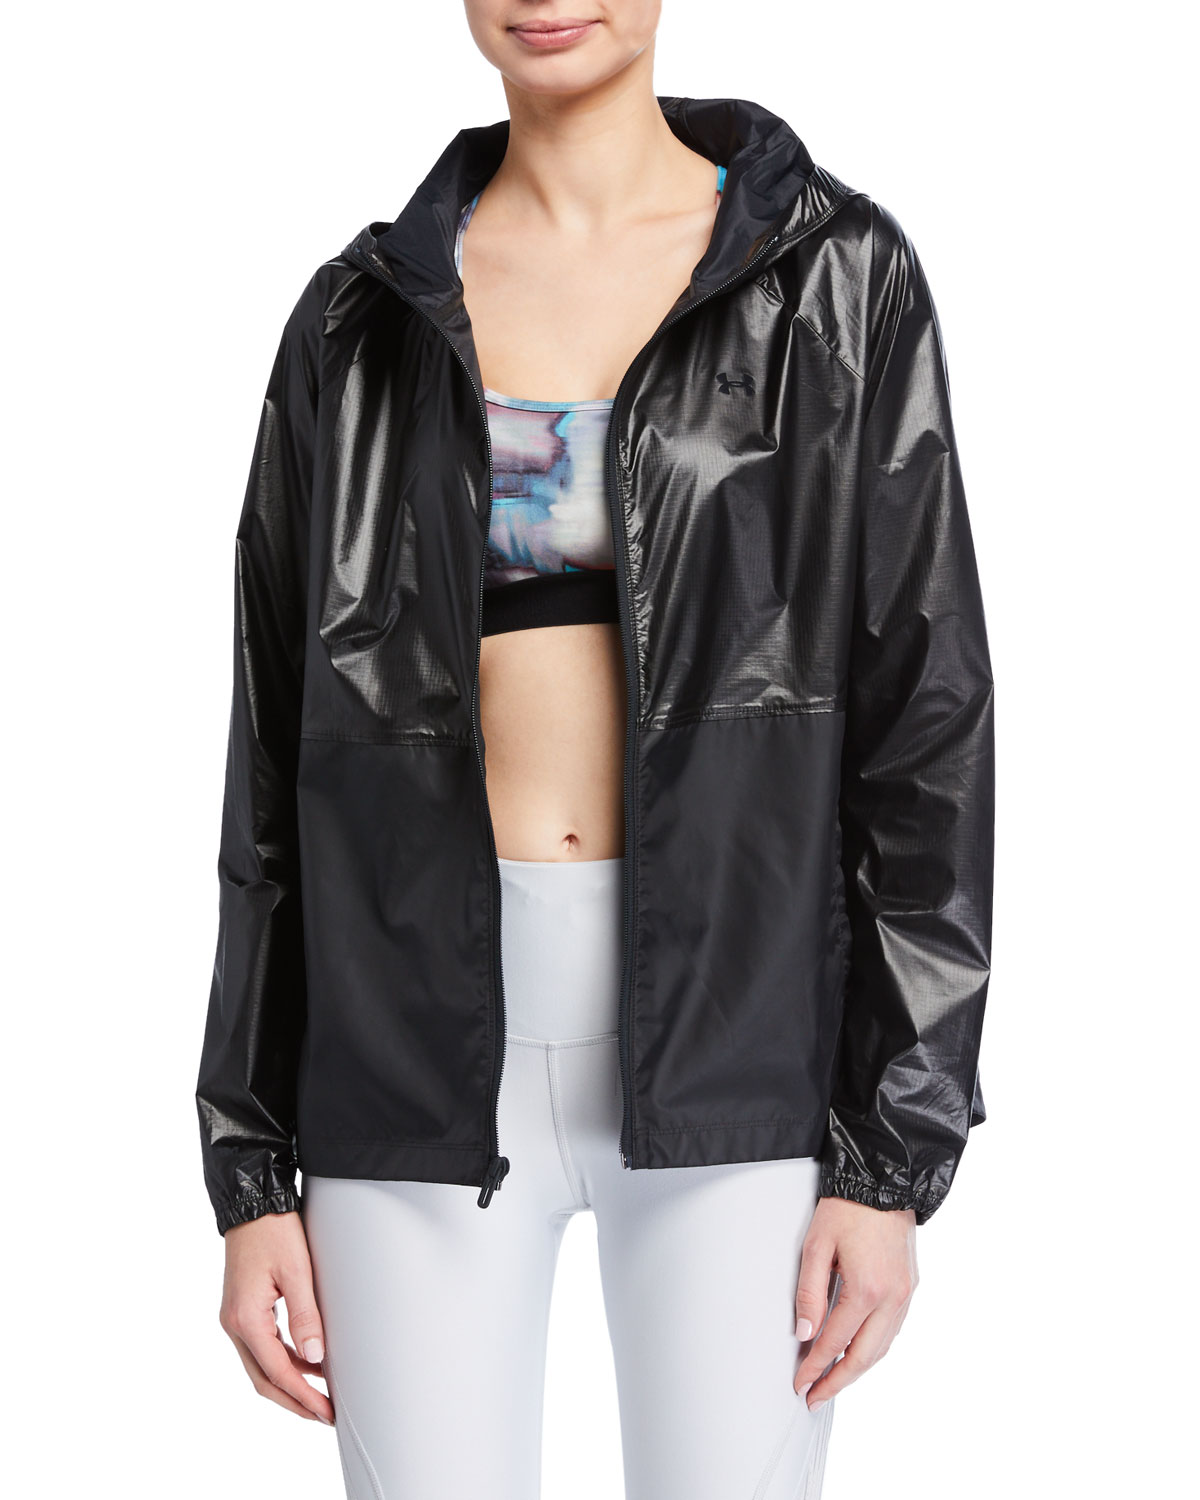 Under Armour Jackets METALLIC WOVEN JACKET